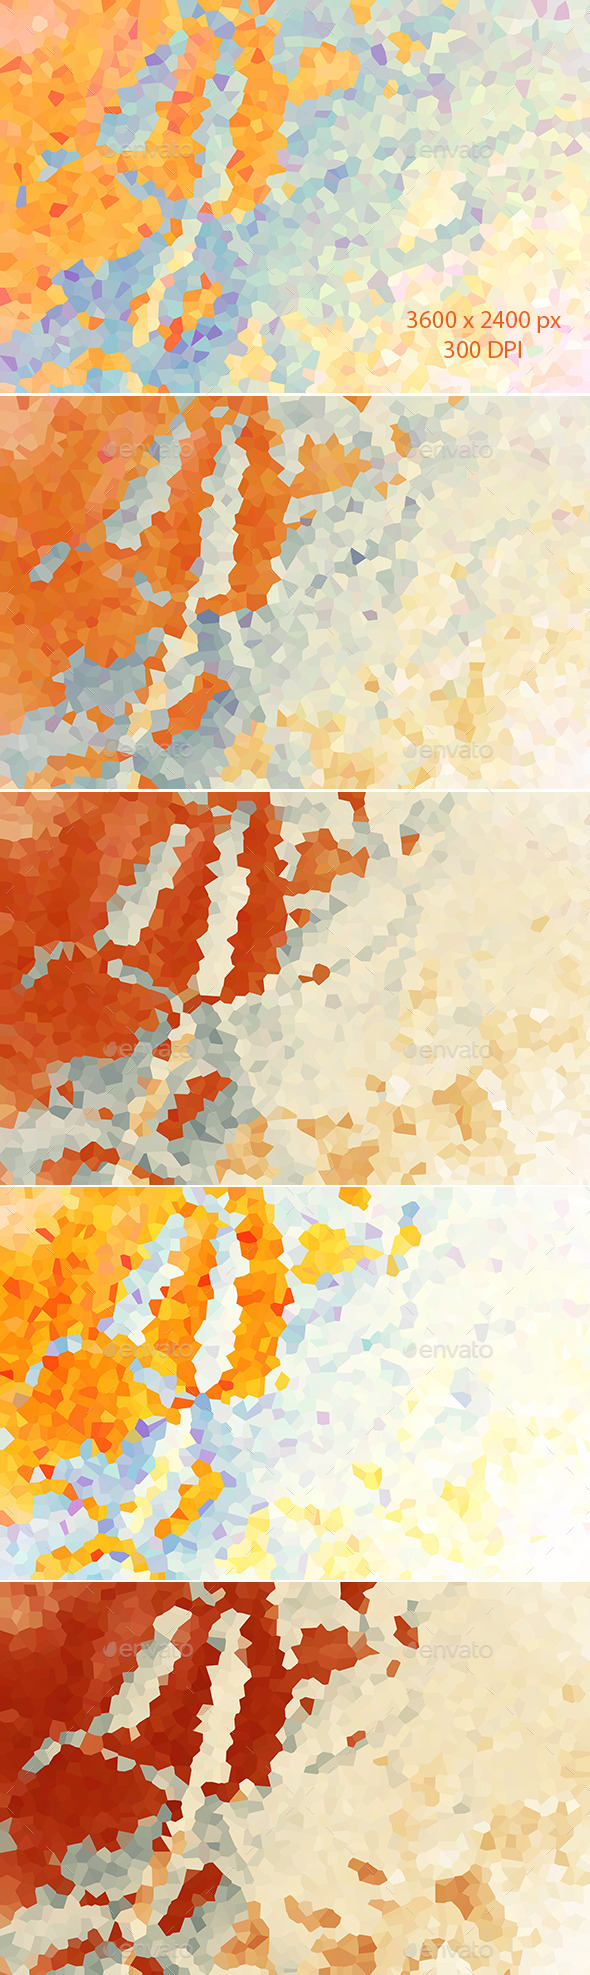 Colorful Abstract Polygon Backgrounds